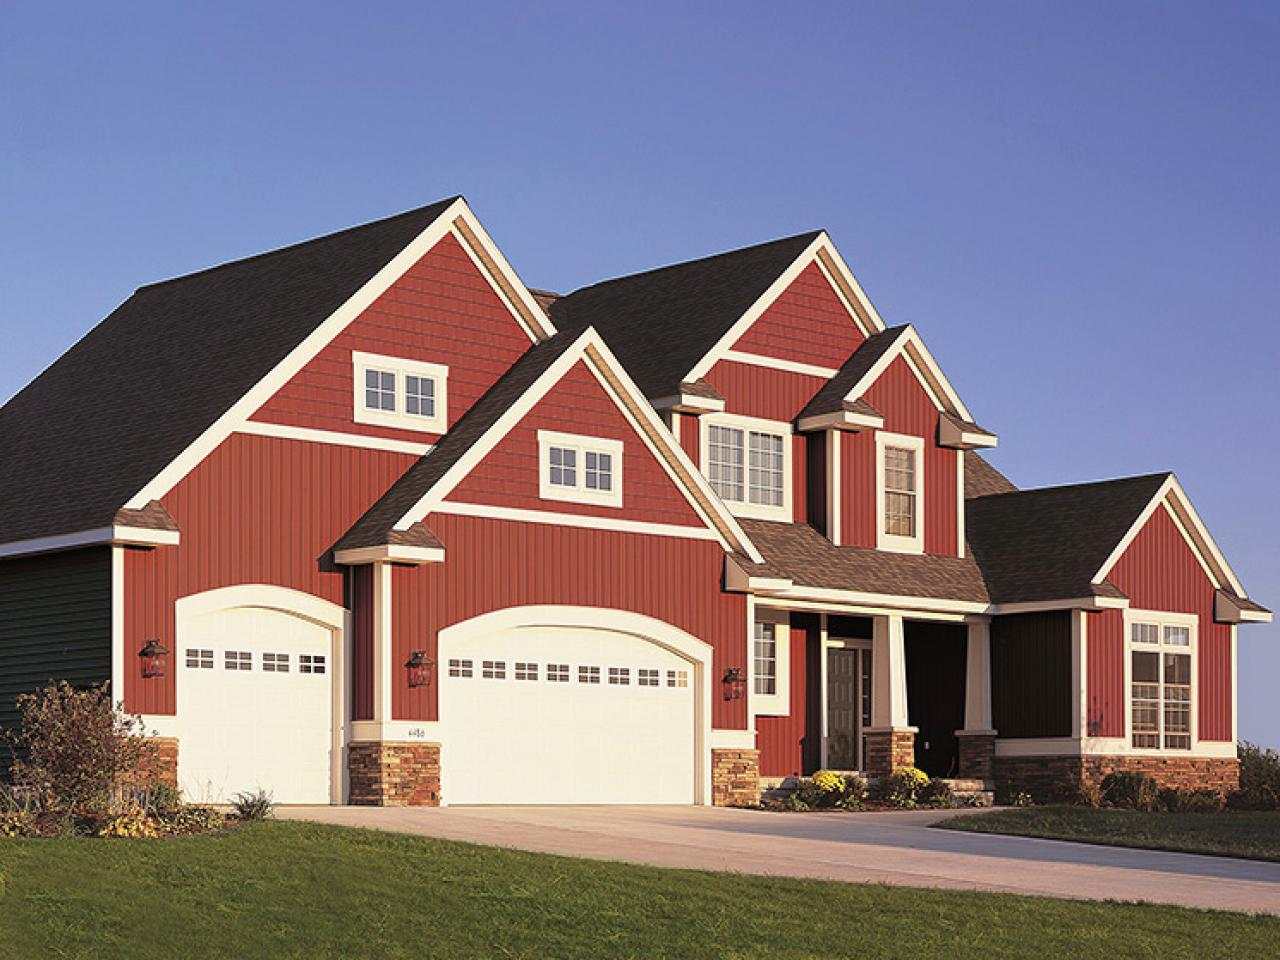 Home Exterior Siding exterior siding options for your home quicken loans zing blog Top Six Exterior Siding Options